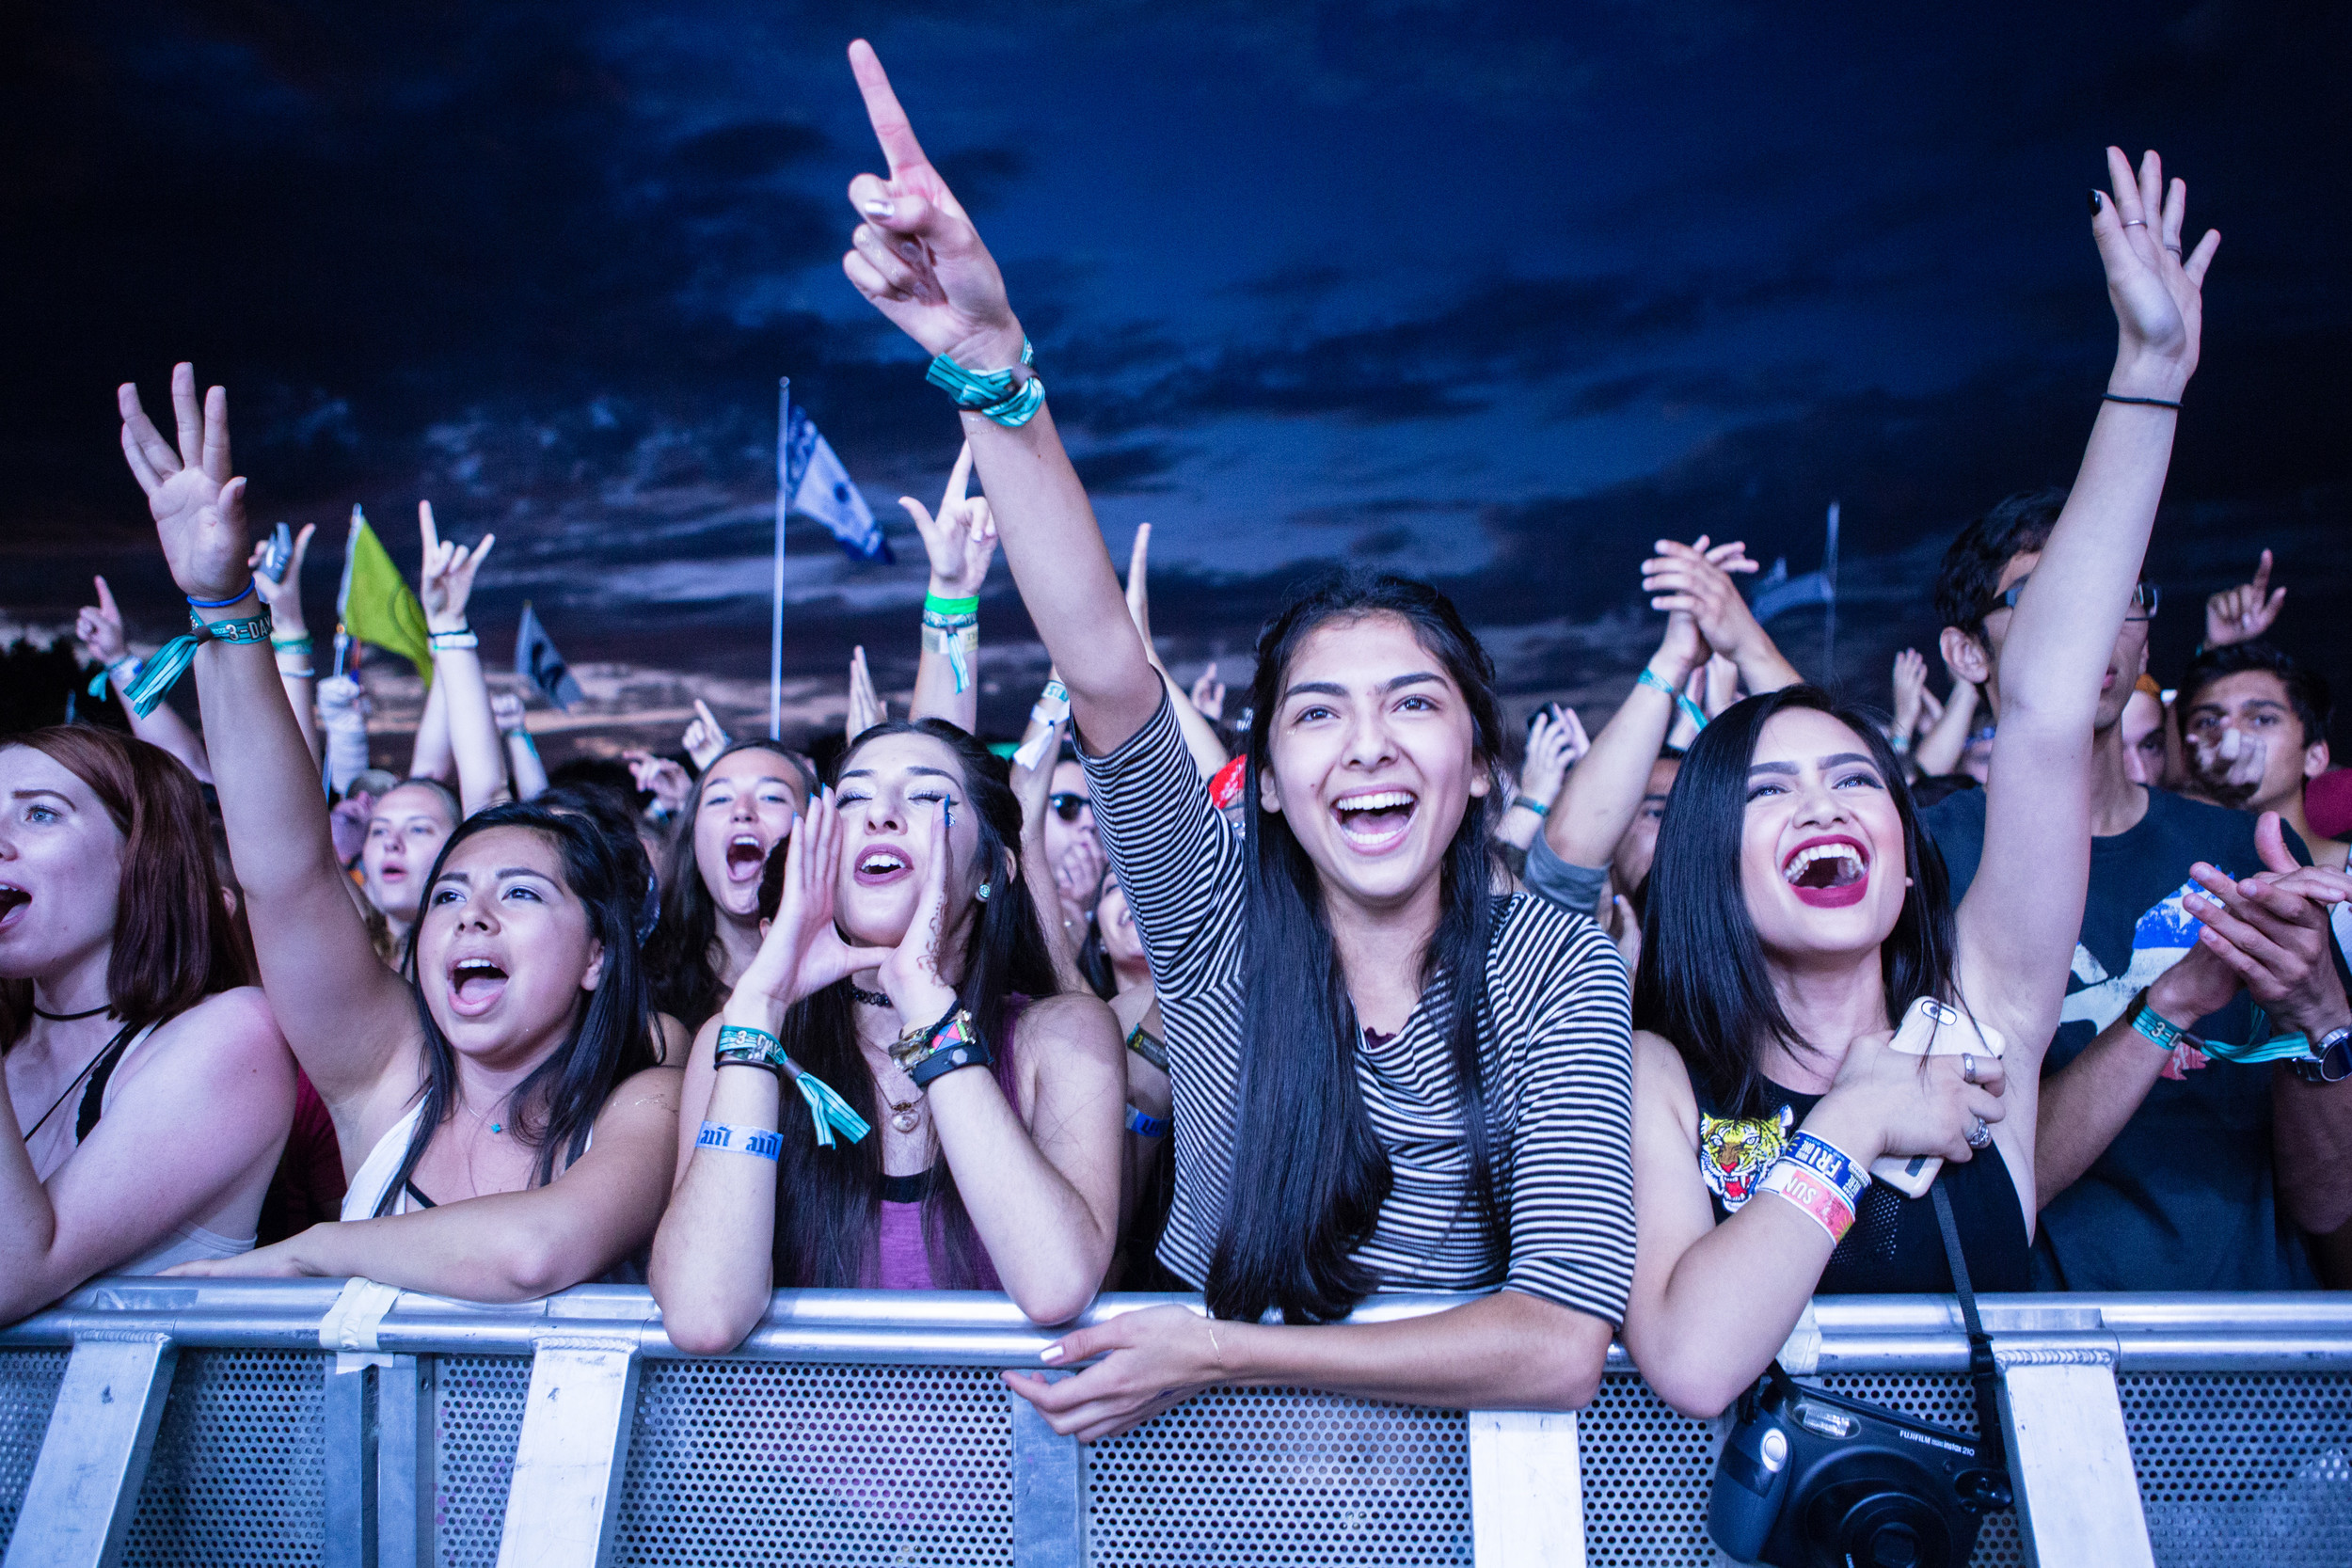 Fans at Austin City Limits Music Festival cheer on Two Door Cinema Club, Oct. 1, 2016.